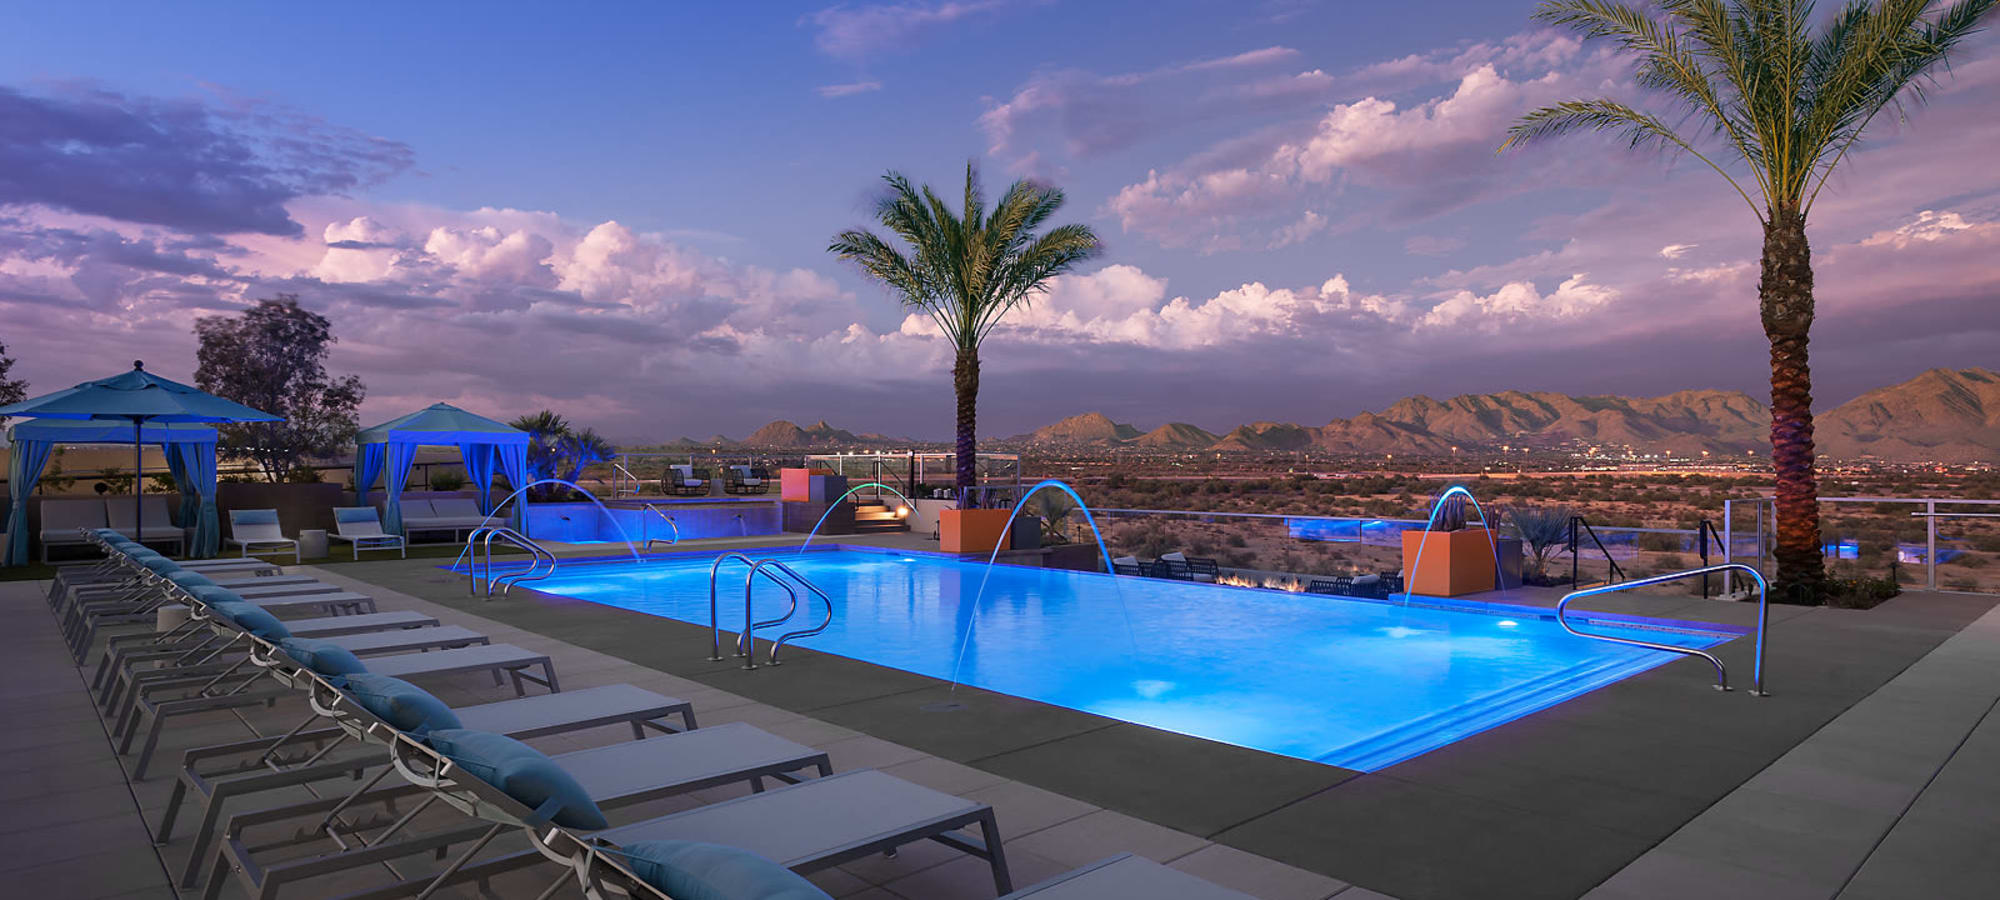 Beautiful resort style pool at The Halsten at Chauncey Lane in Scottsdale, Arizona